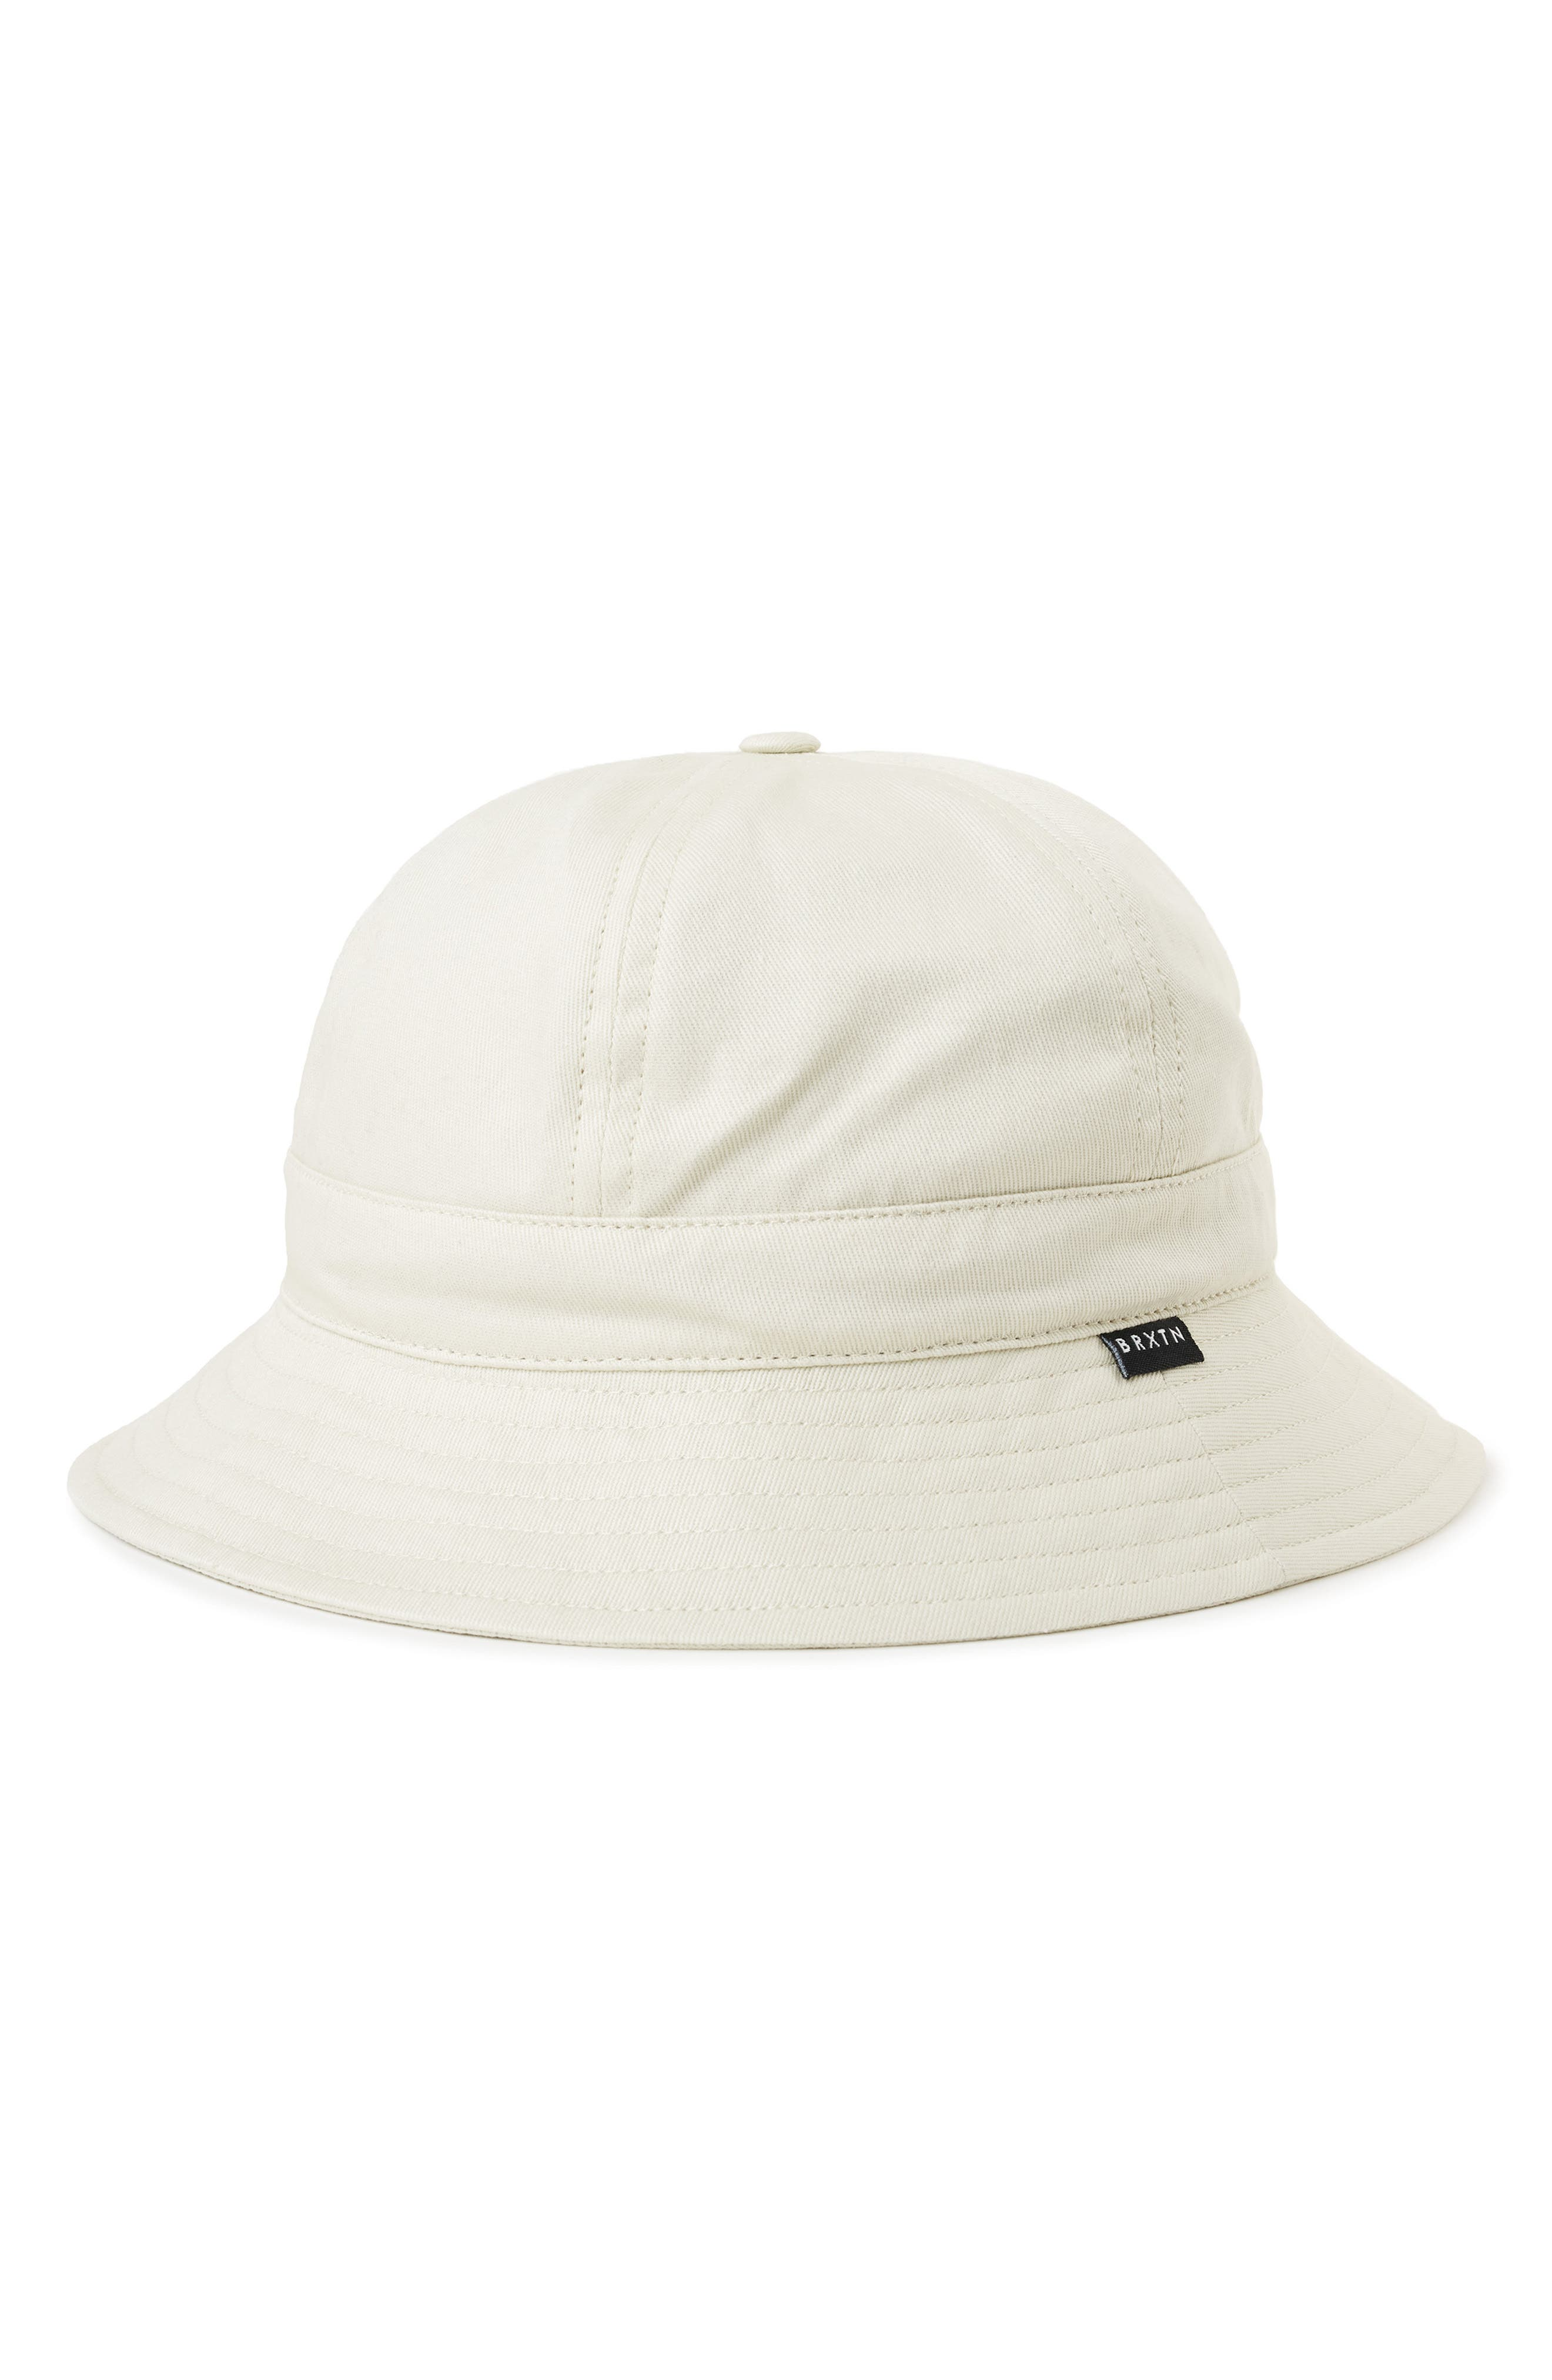 Banks II Bucket Hat, Main, color, OFF WHITE